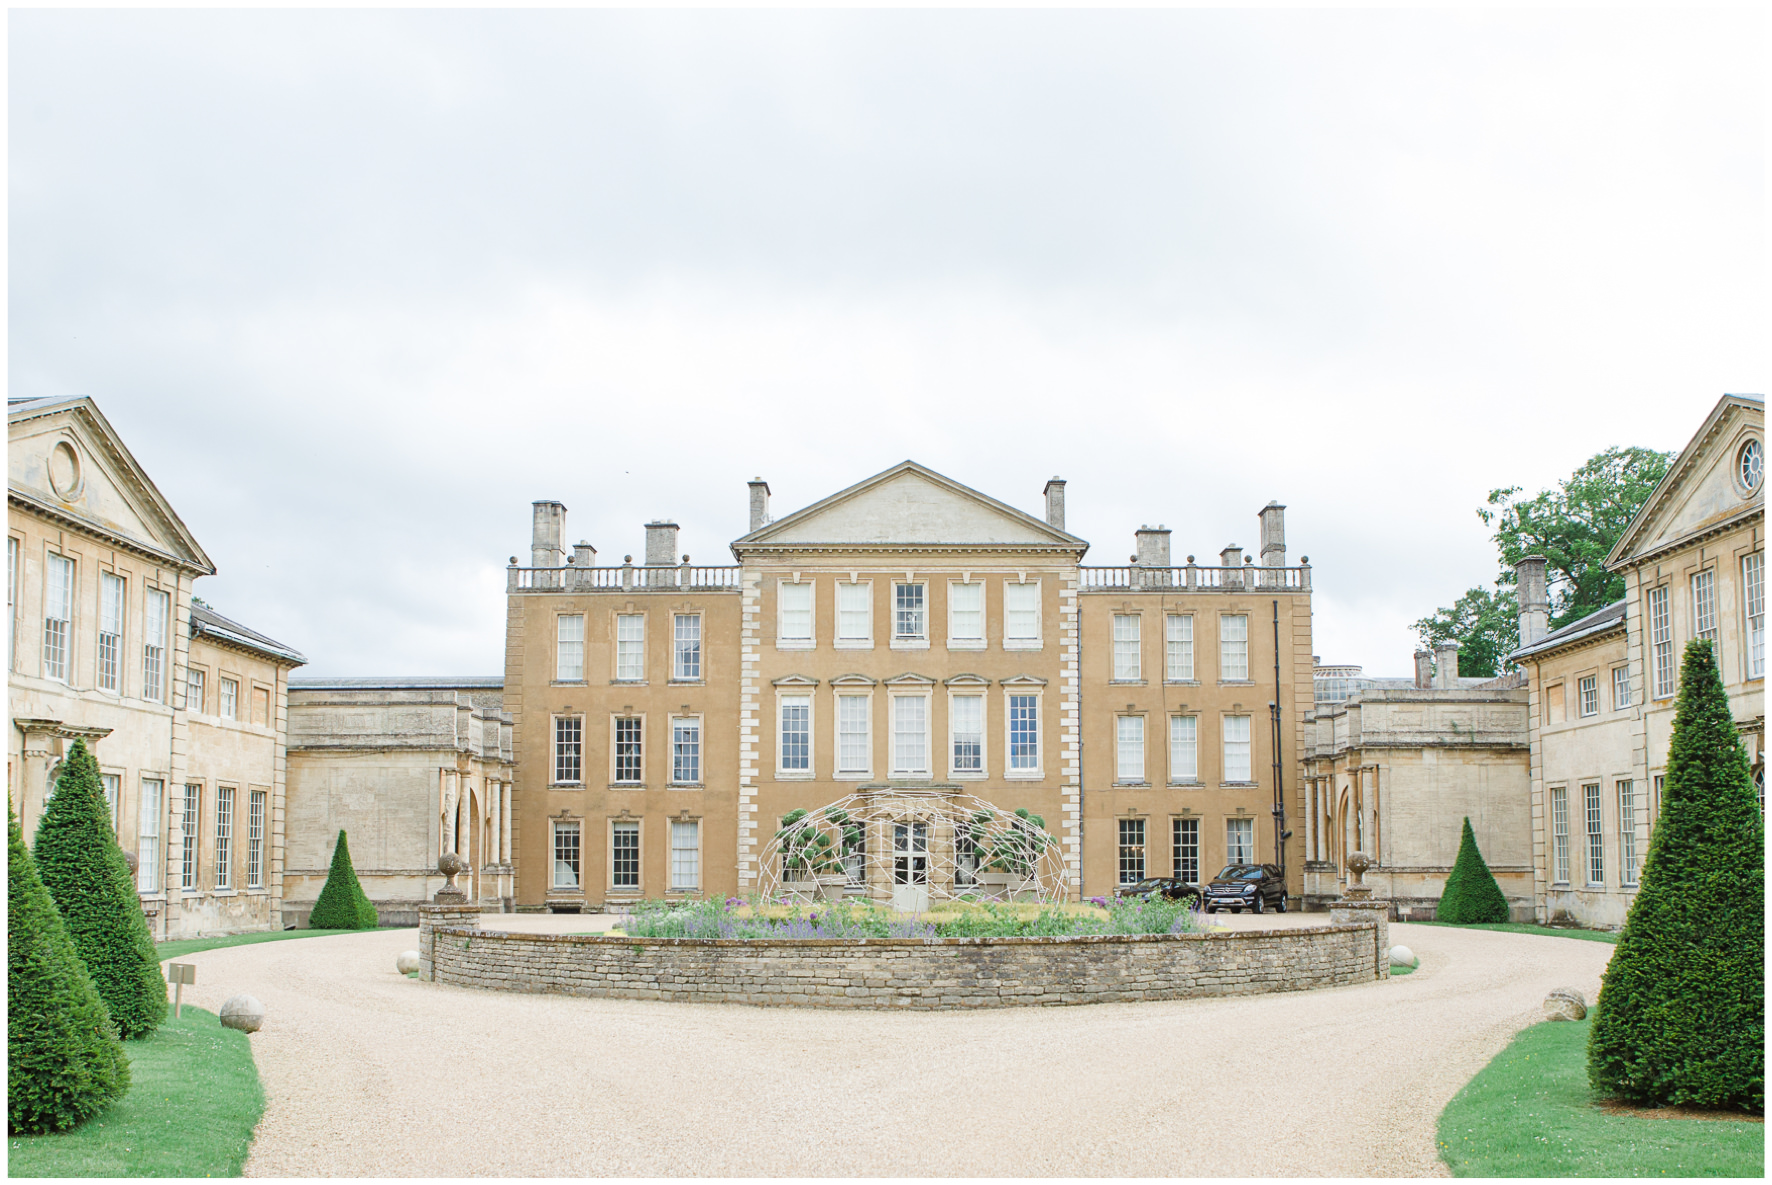 Lucy Davenport Photography, Aynhoe Park, Oxfordshire, wedding venue, Rock My Wedding